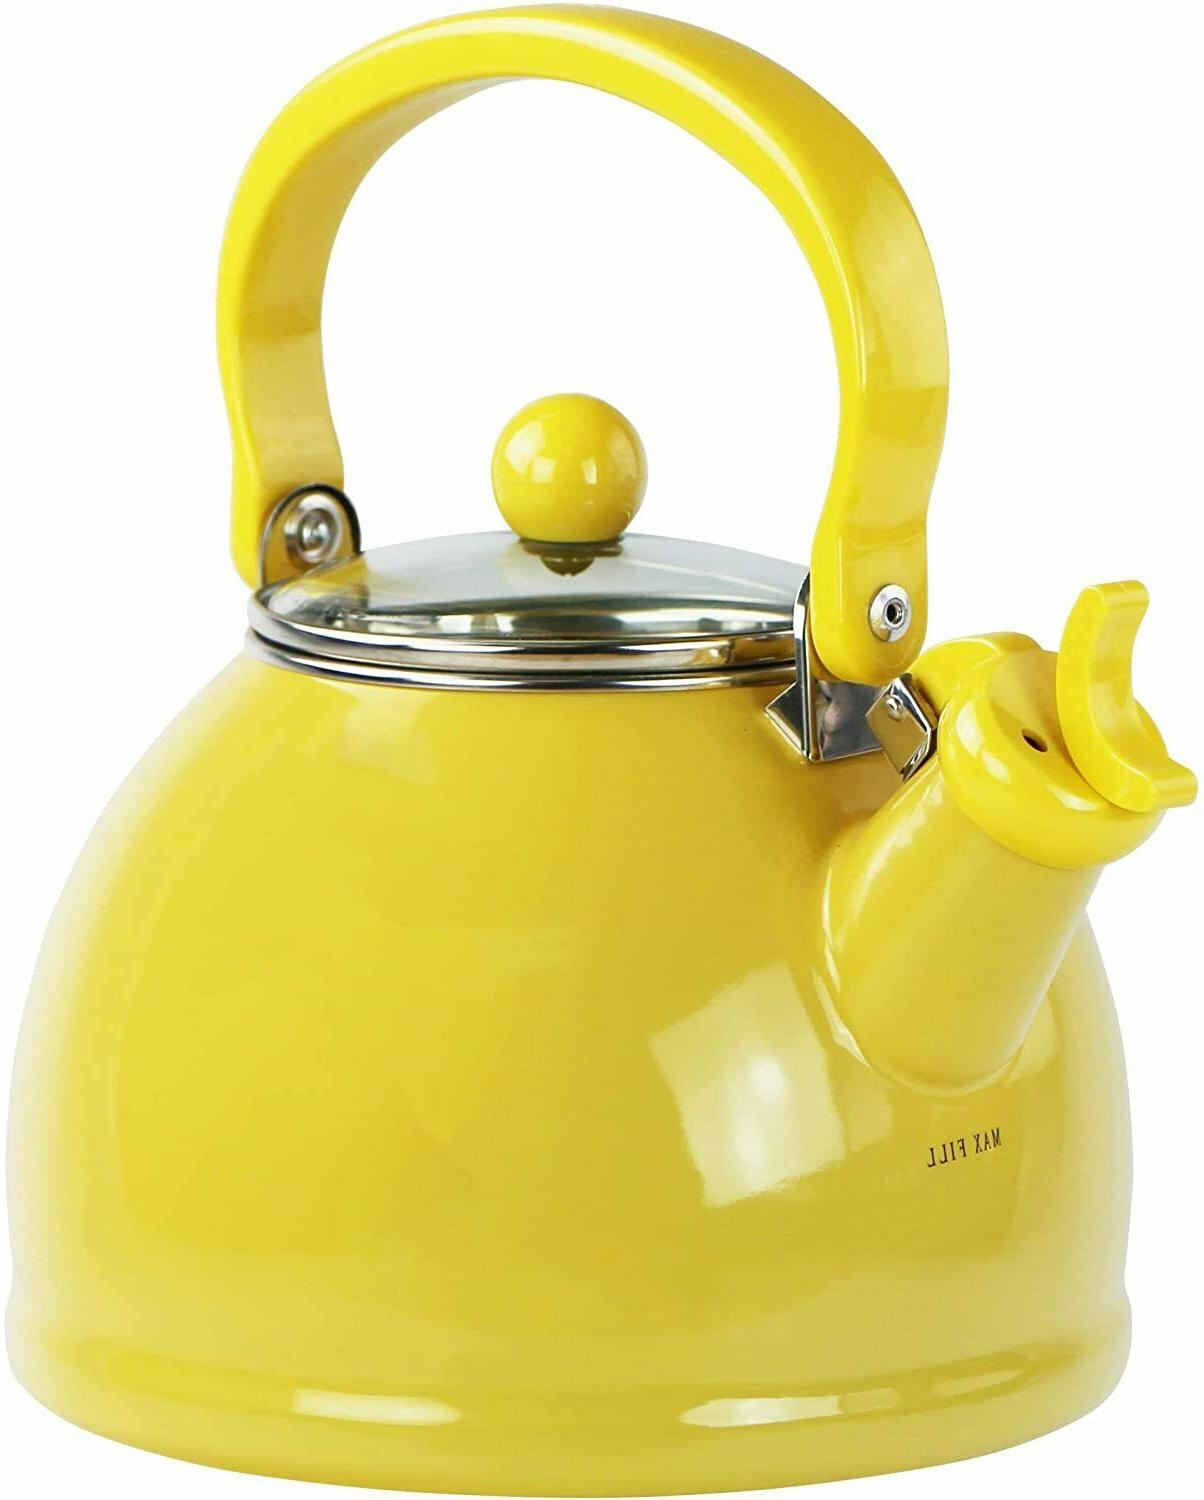 Reston Lloyd 60201 Lemon - Whistling Tea Kettle With Glass L